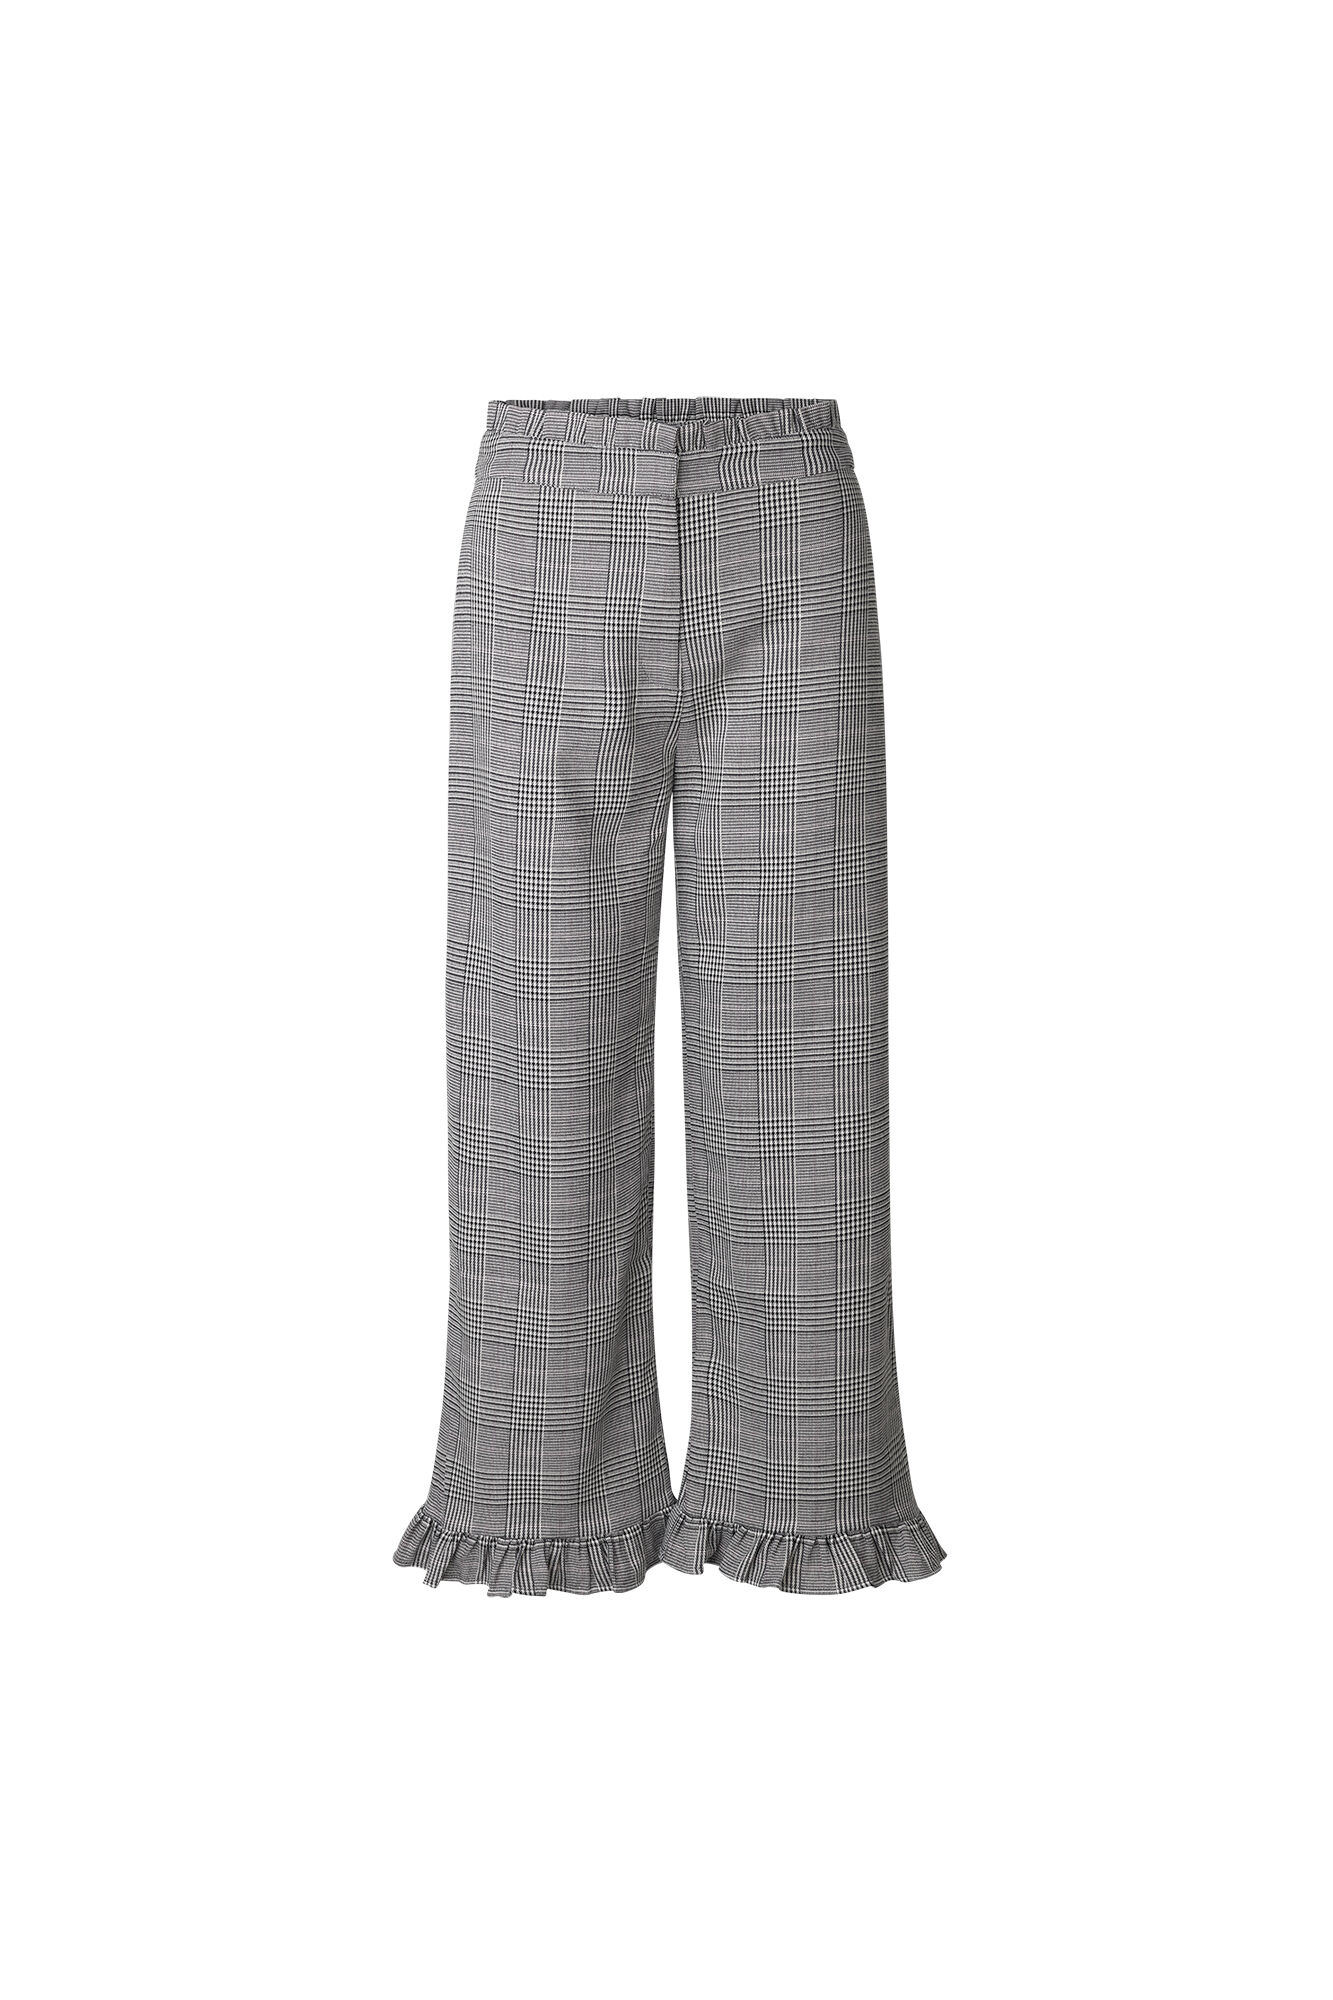 ENTAFFY PANTS 6506, SATORIAL CHECK